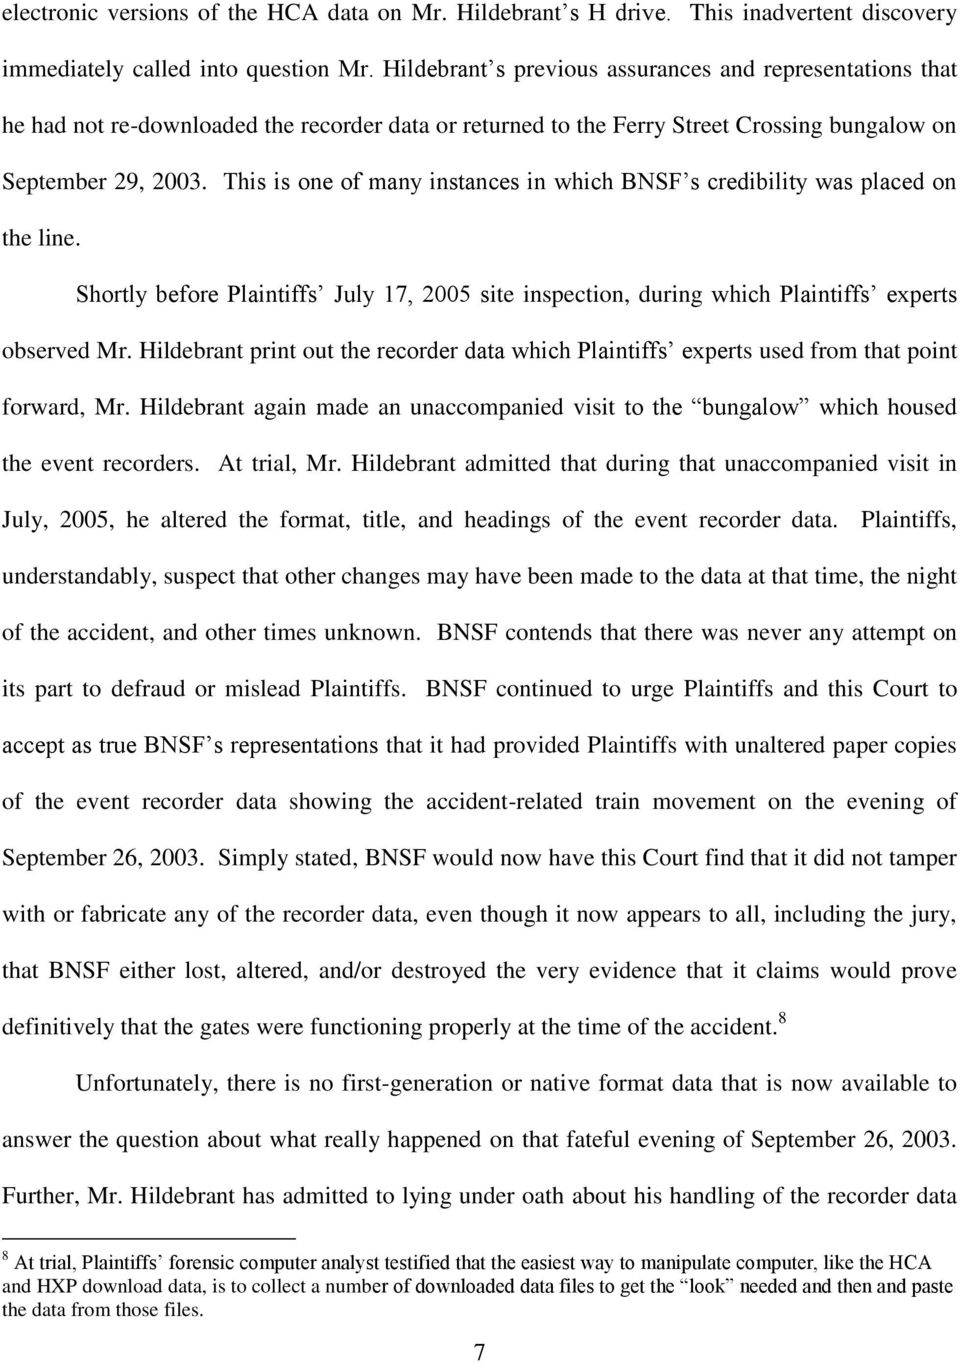 This is one of many instances in which BNSF s credibility was placed on the line. Shortly before Plaintiffs July 17, 2005 site inspection, during which Plaintiffs experts observed Mr.